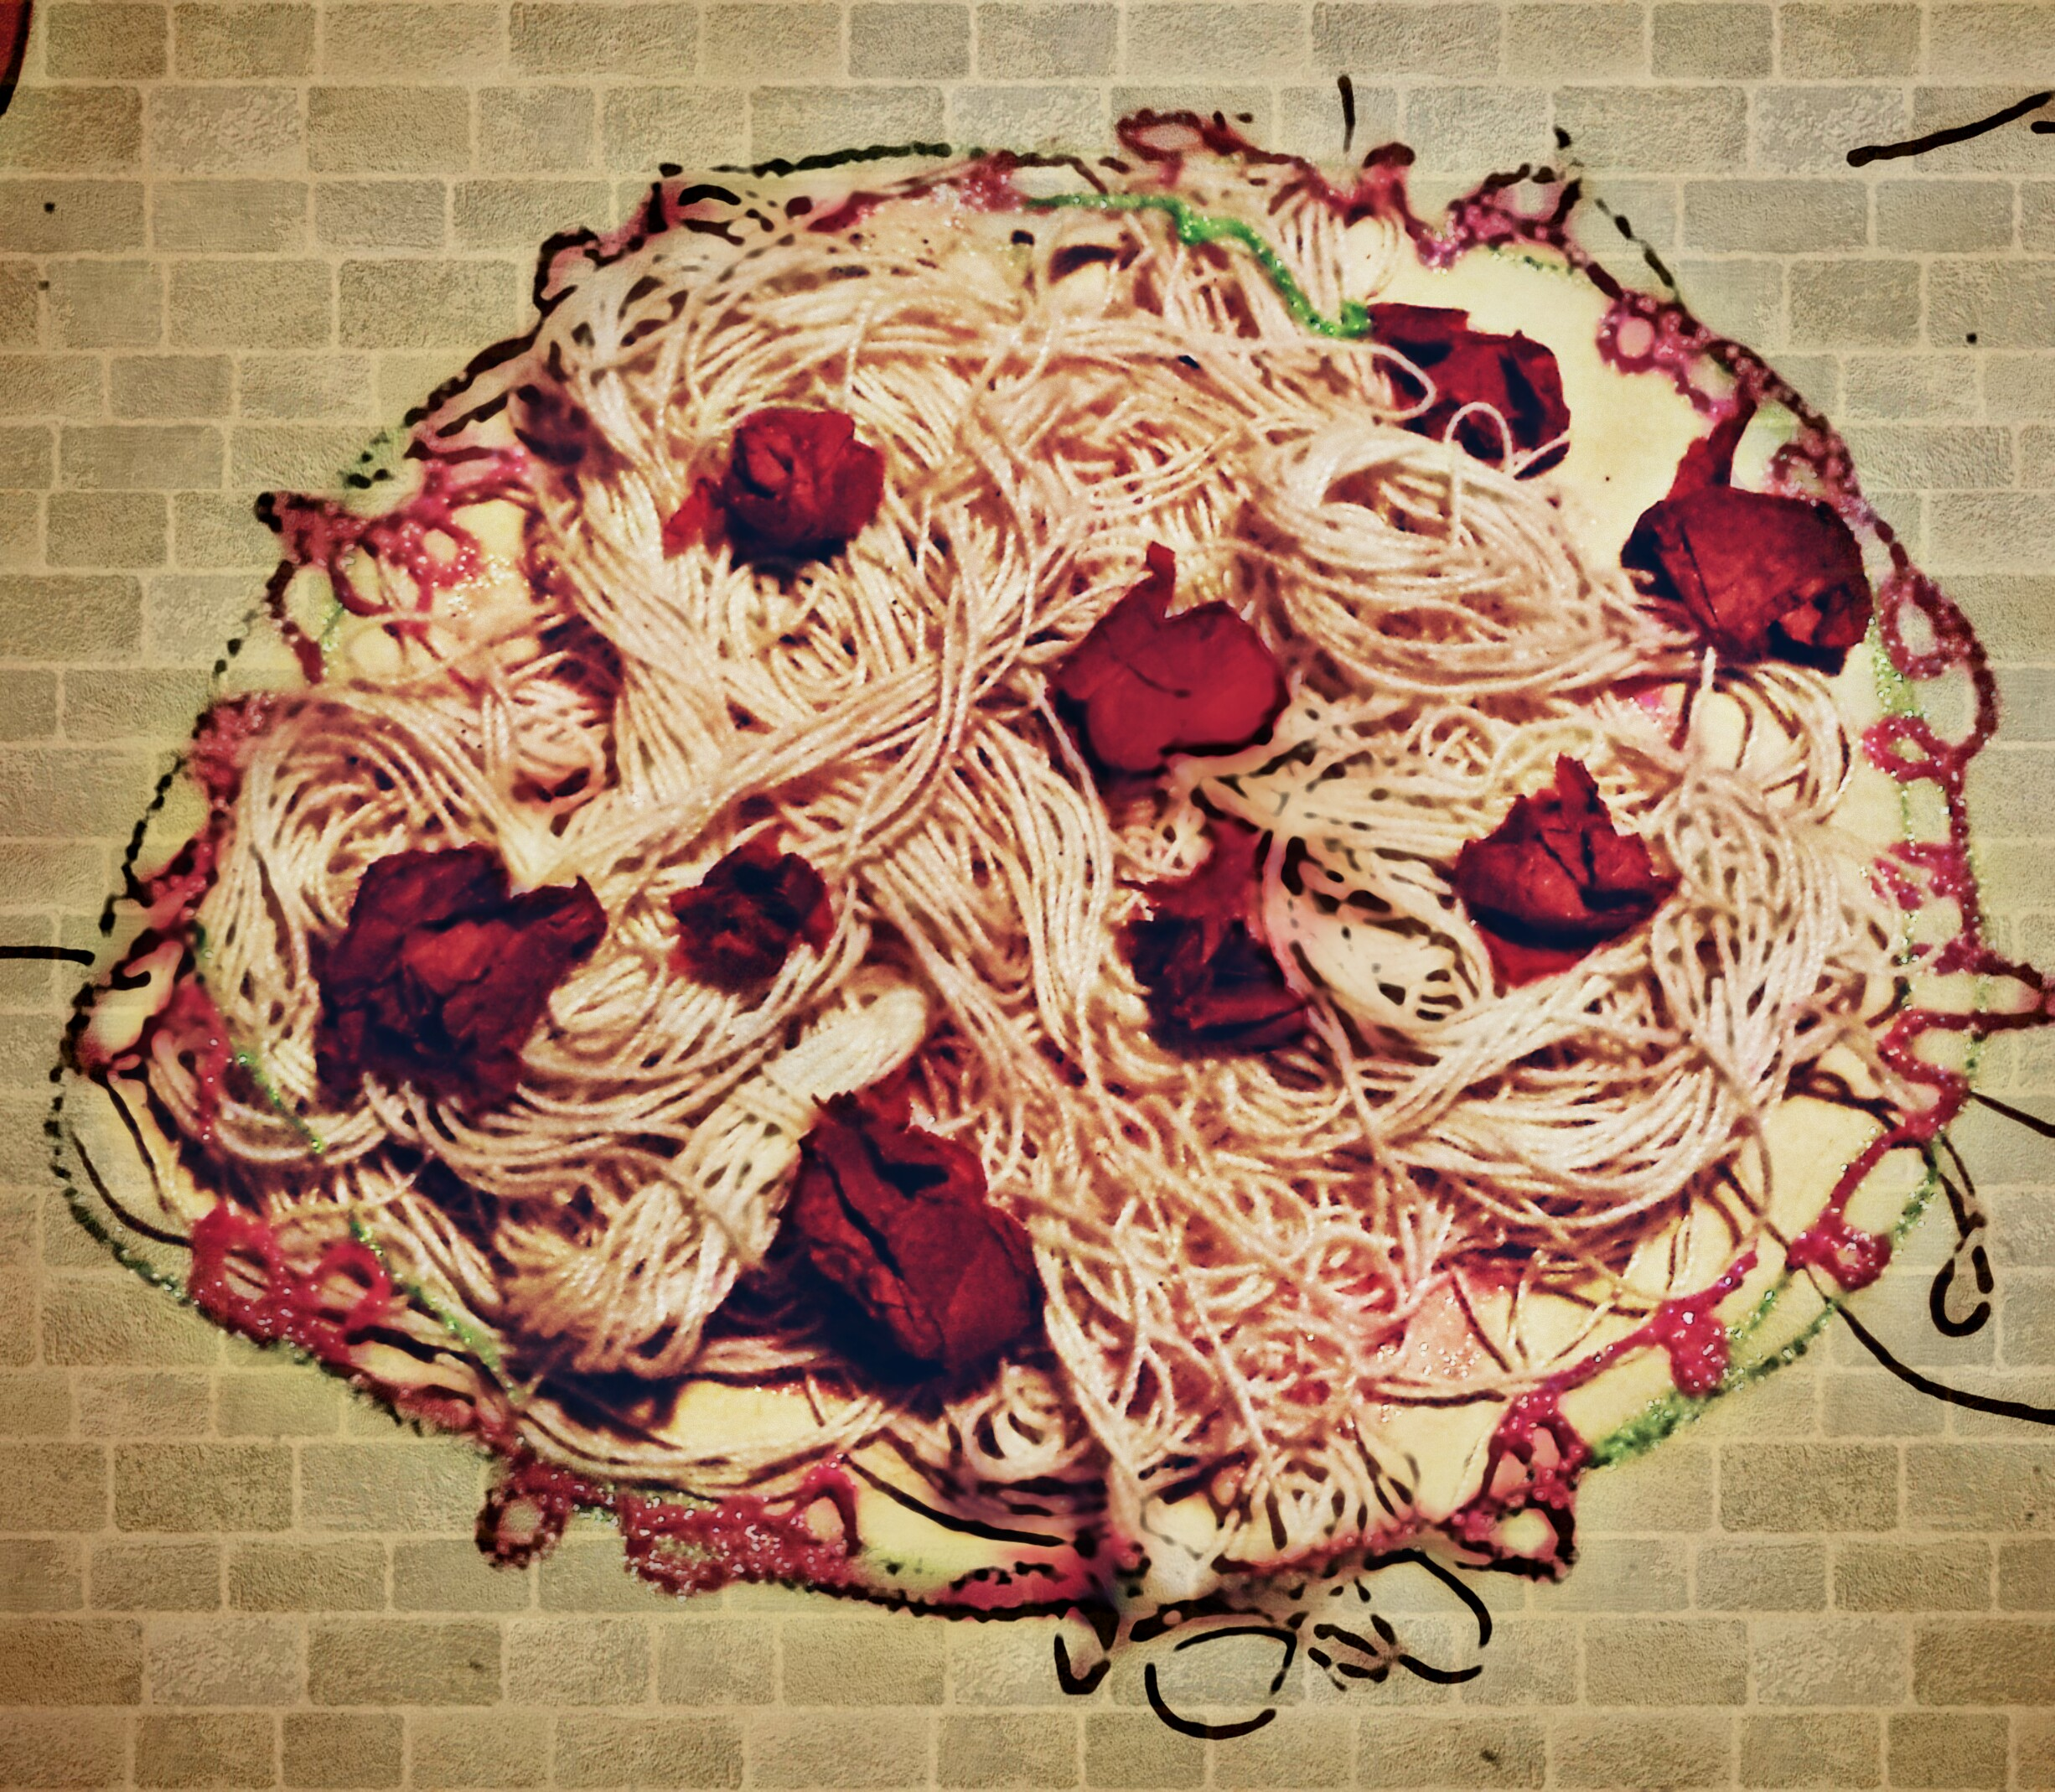 spaghetti on the wall